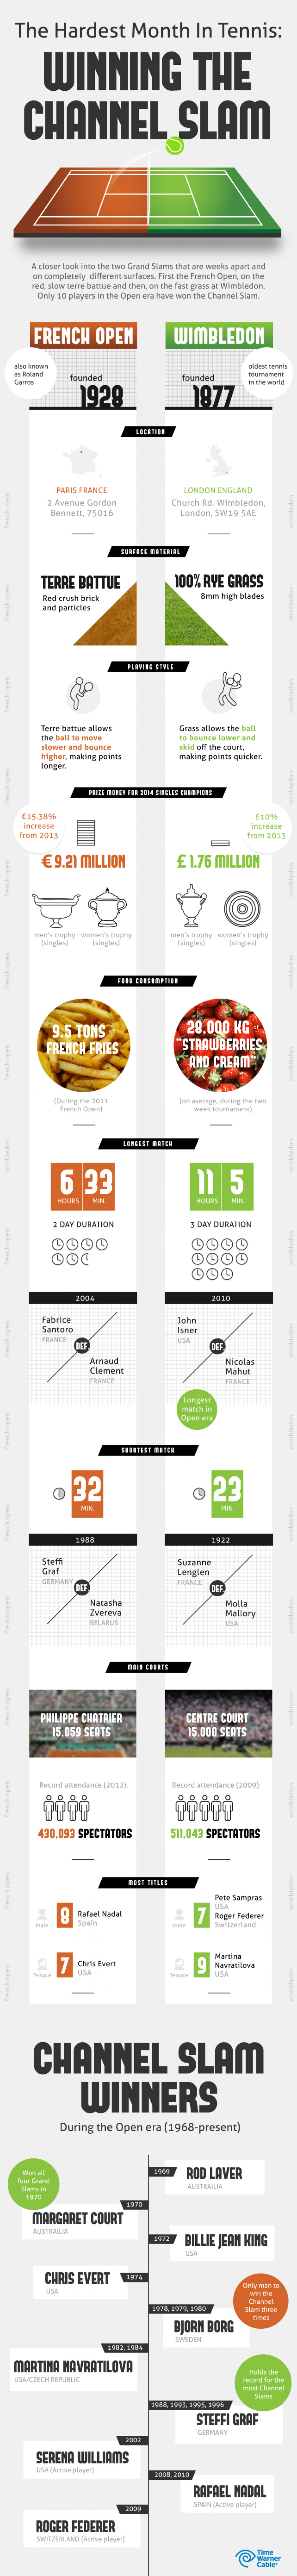 The Hardest Month in Tennis: Winning the Channel Slam Infographic